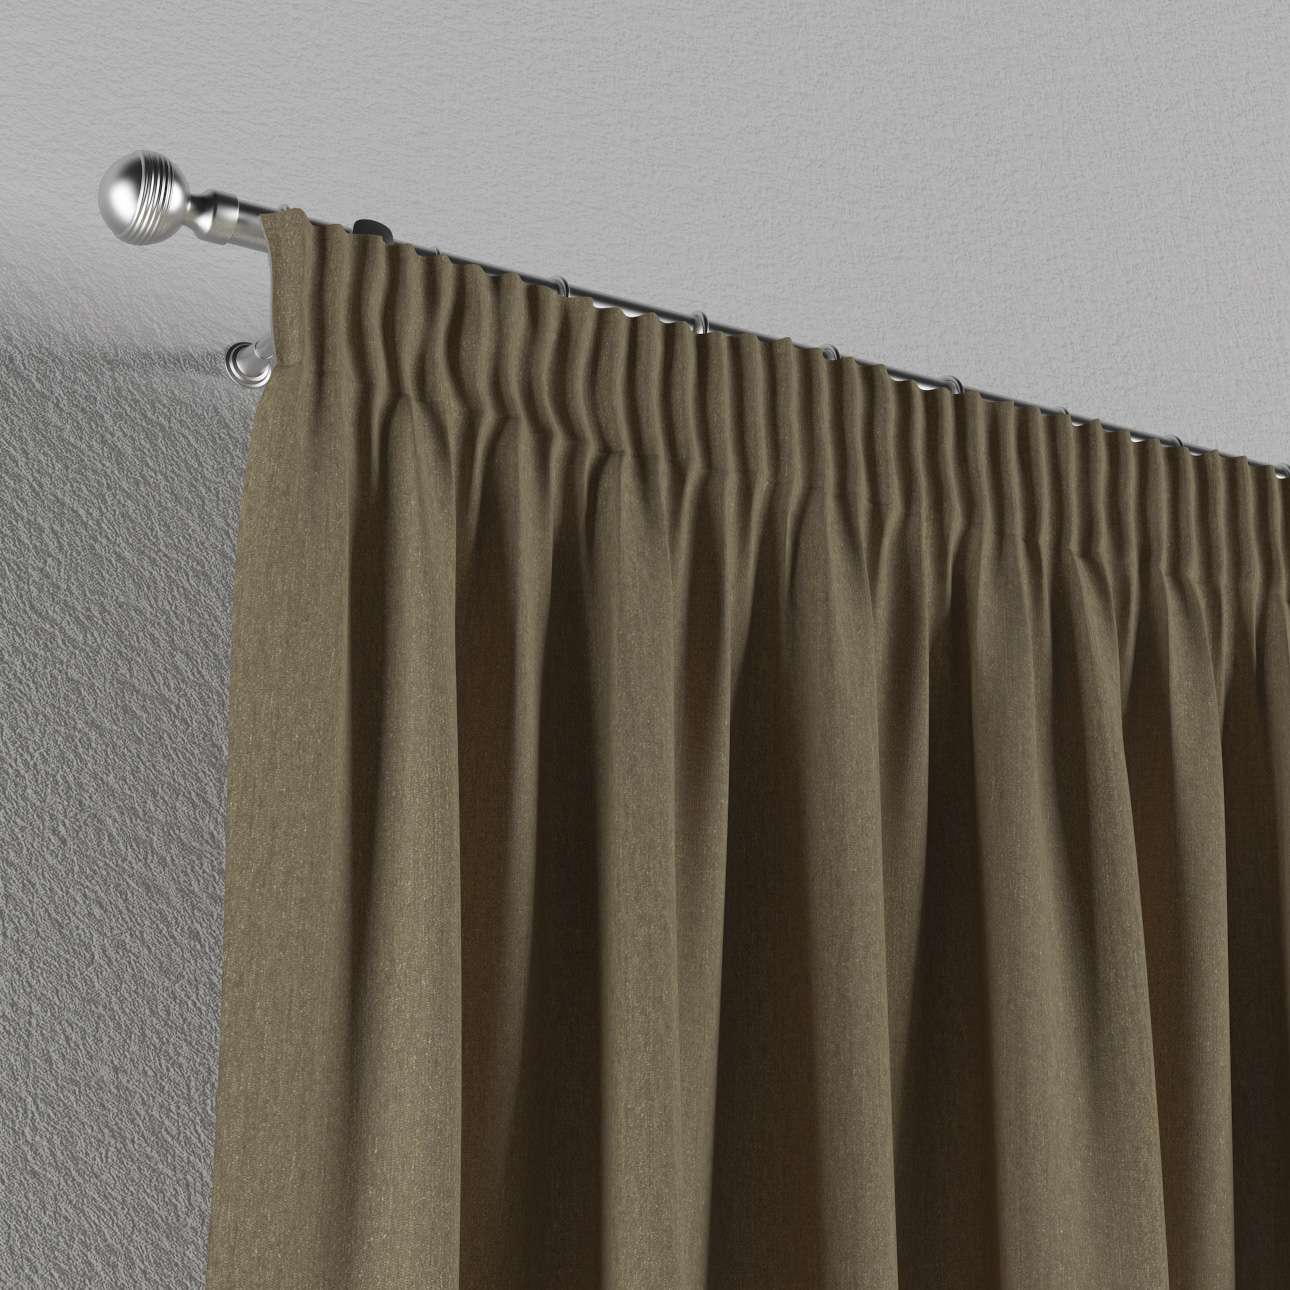 Pencil pleat curtains 130 x 260 cm (51 x 102 inch) in collection Chenille, fabric: 702-21